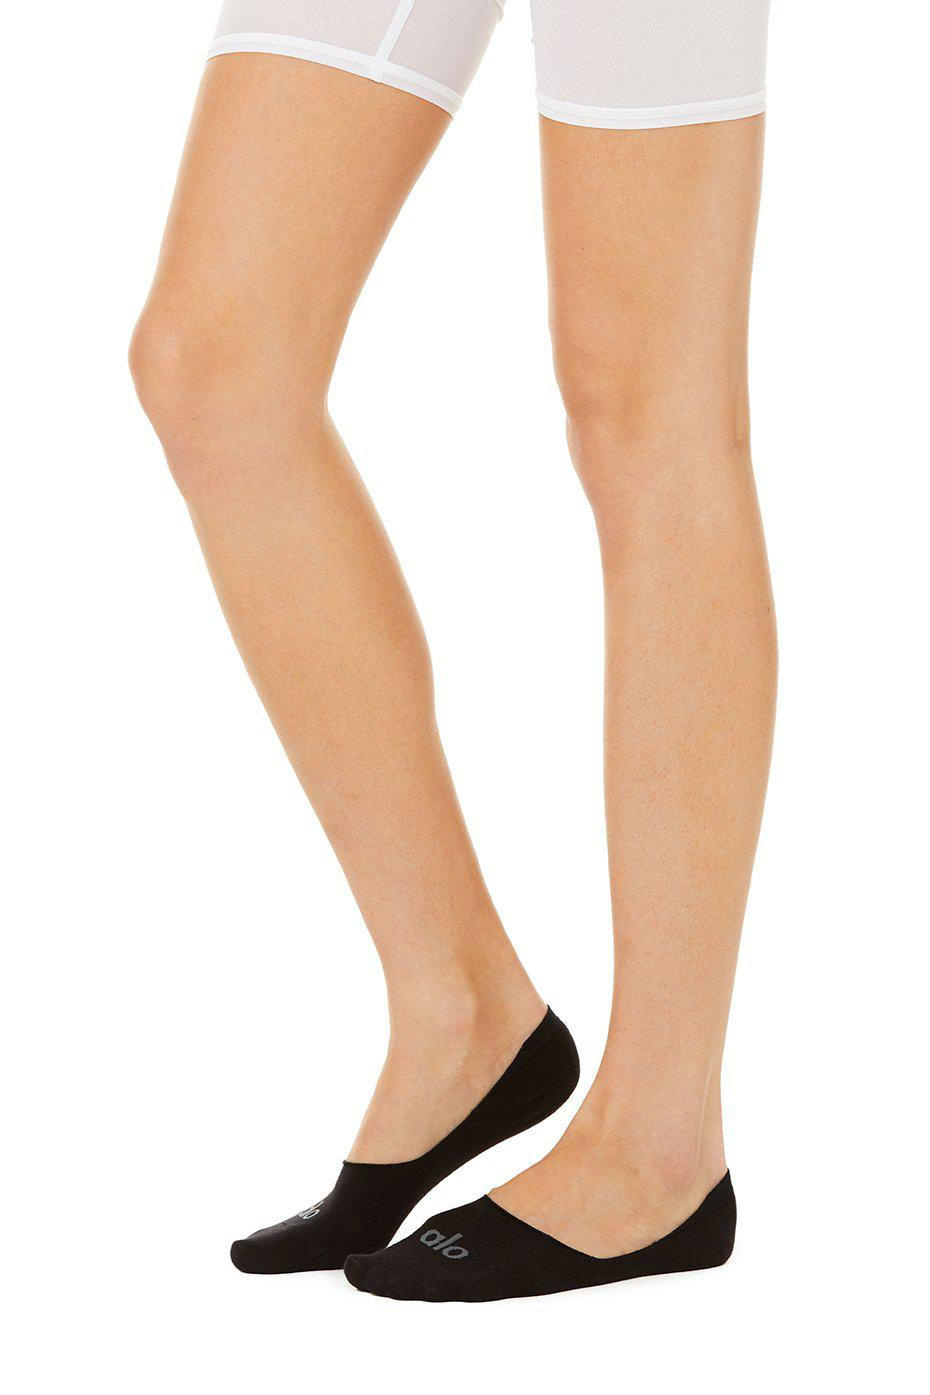 Women's Conceal Sock - Black/Anthracite